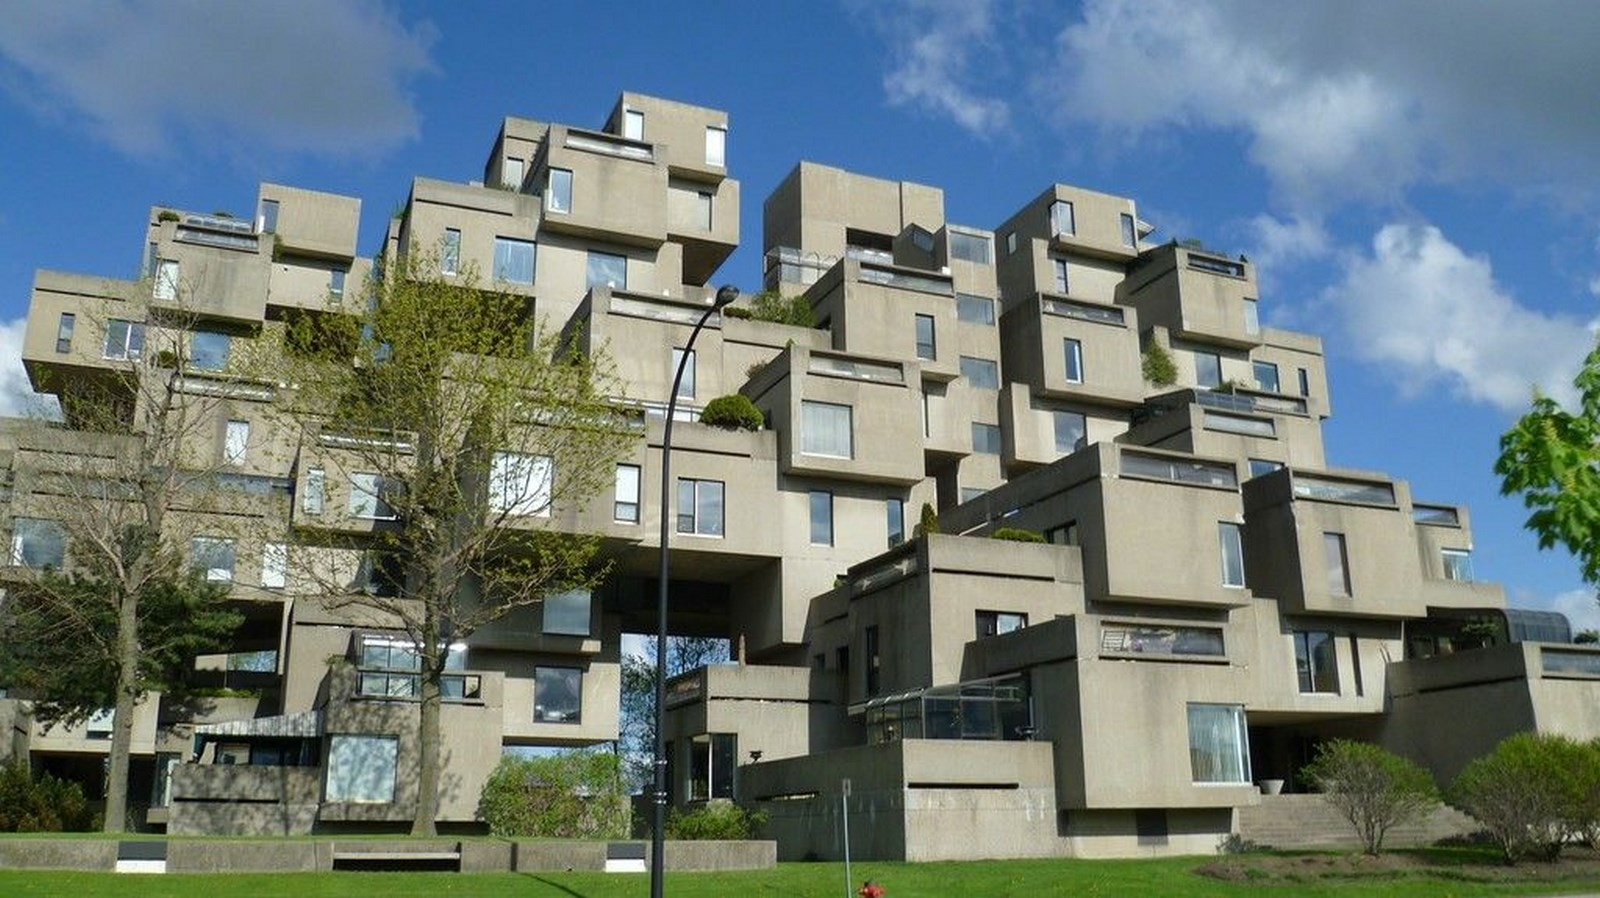 10 Prime Examples of Brutalist Architecture (3)